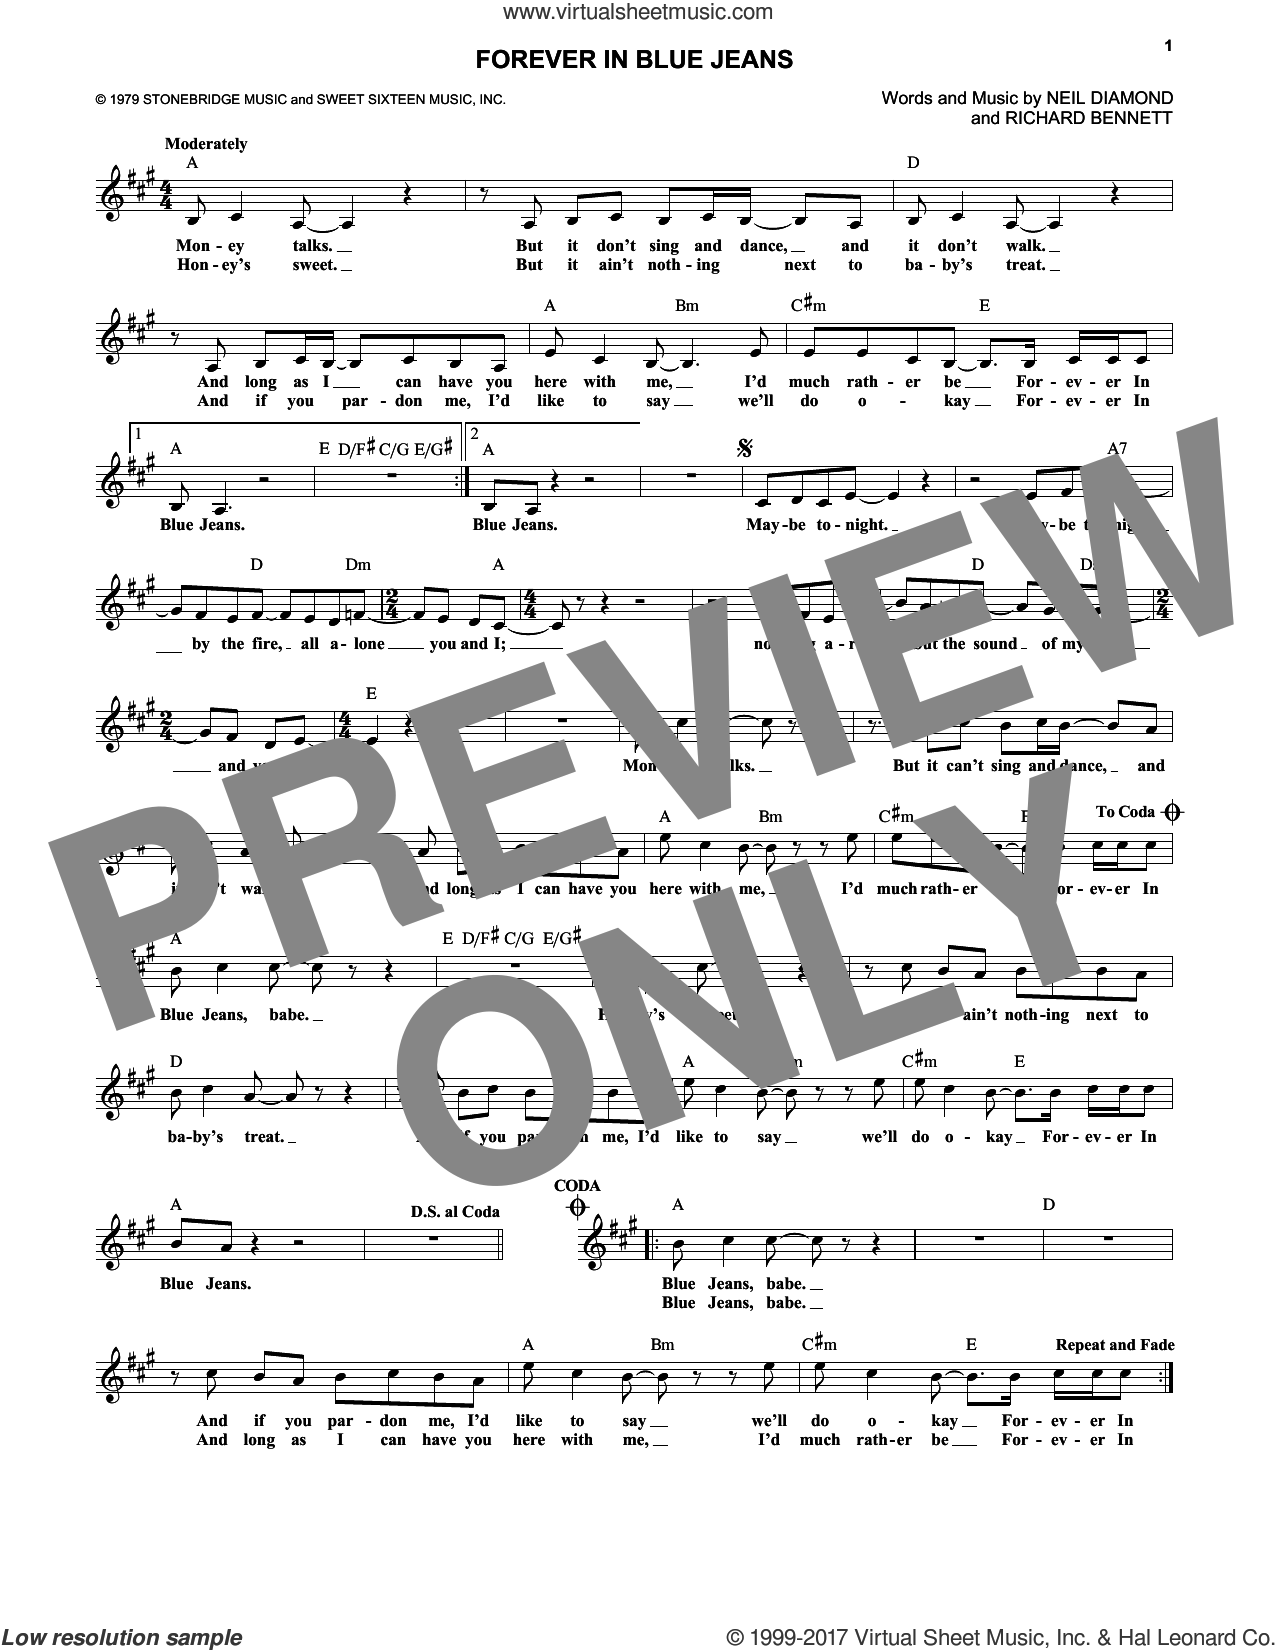 Forever In Blue Jeans sheet music for voice and other instruments (fake book) by Neil Diamond and Richard Bennett, intermediate skill level